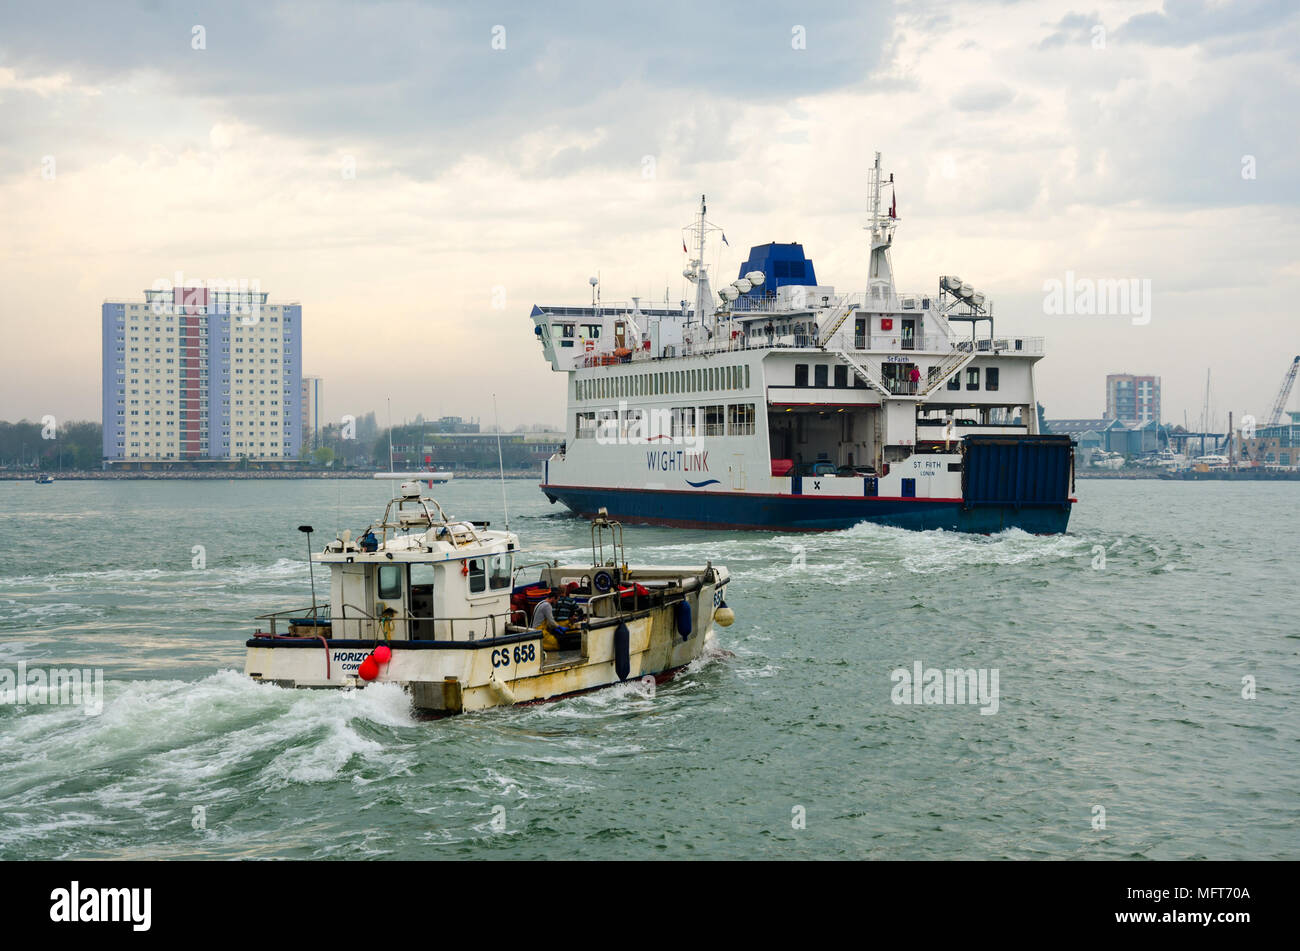 a-fishing-trawler-follows-a-wight-link-car-ferry-out-of-portsmouth-harbour-in-the-uk-MFT70A.jpg